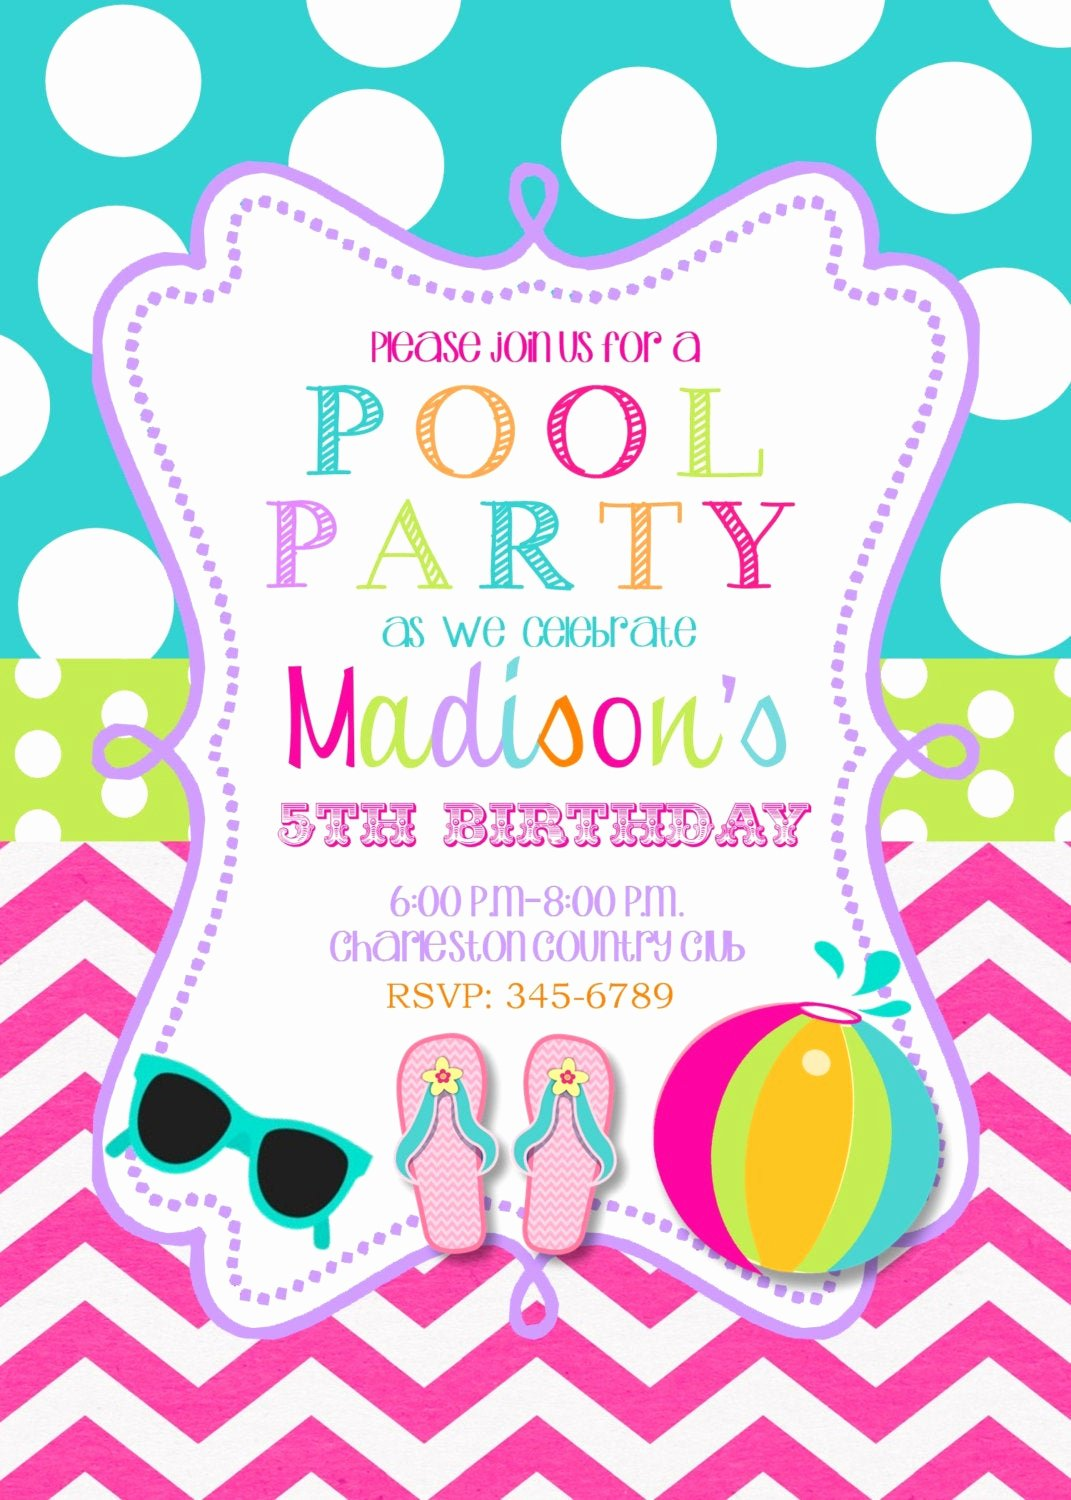 Pool Party Invite Template Elegant Pool Party Birthday Party Invitations Printable or Digital